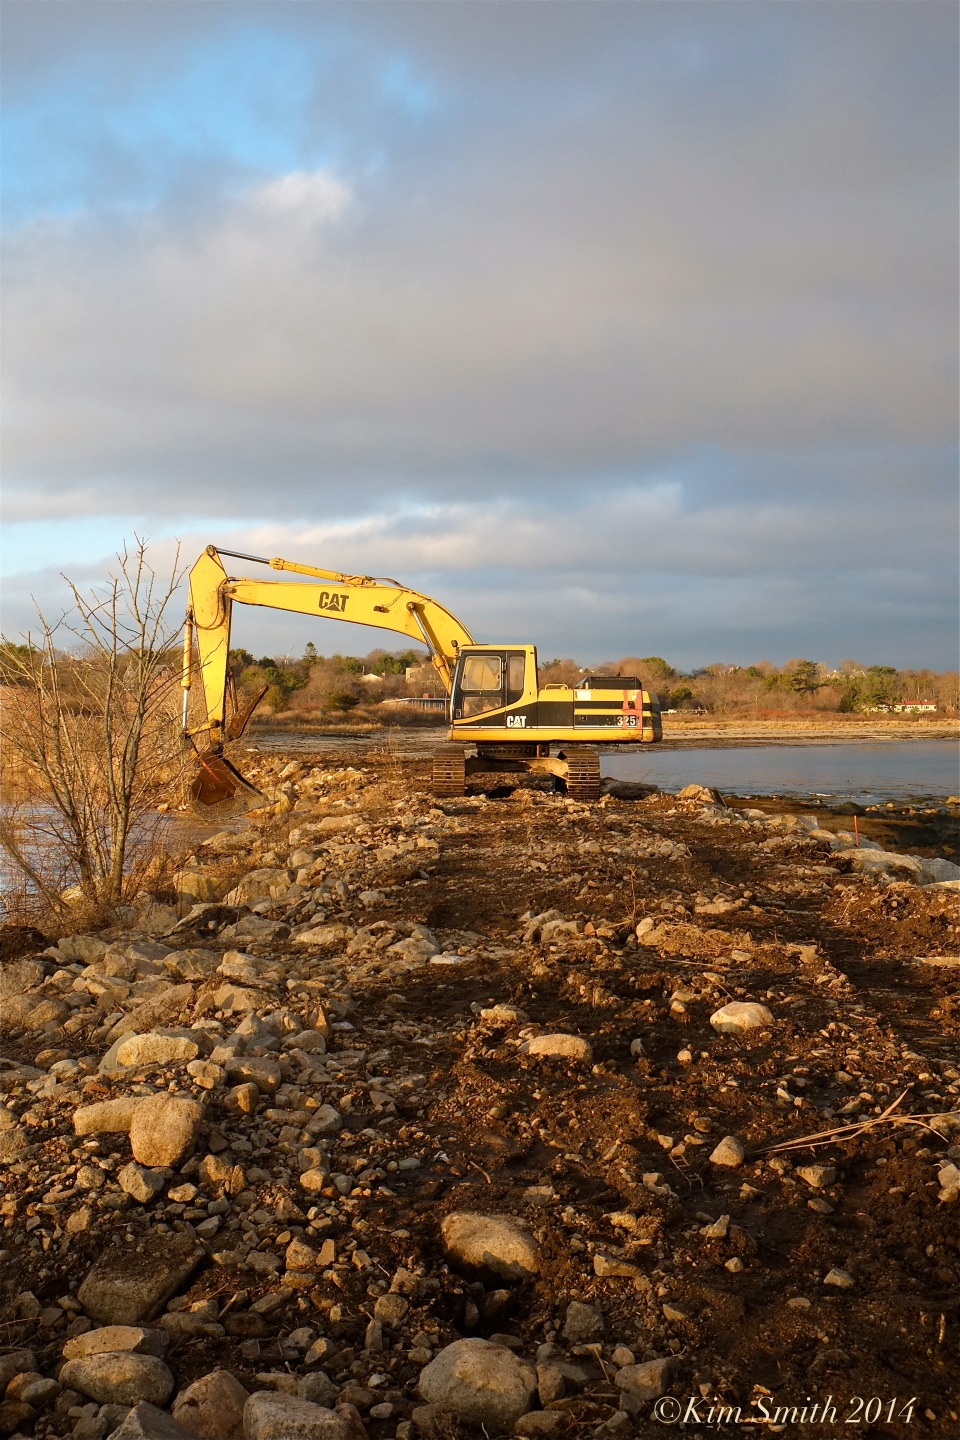 niles-pond-brace-cove-casueway-restoration-2-c2a9kim-smith-2014